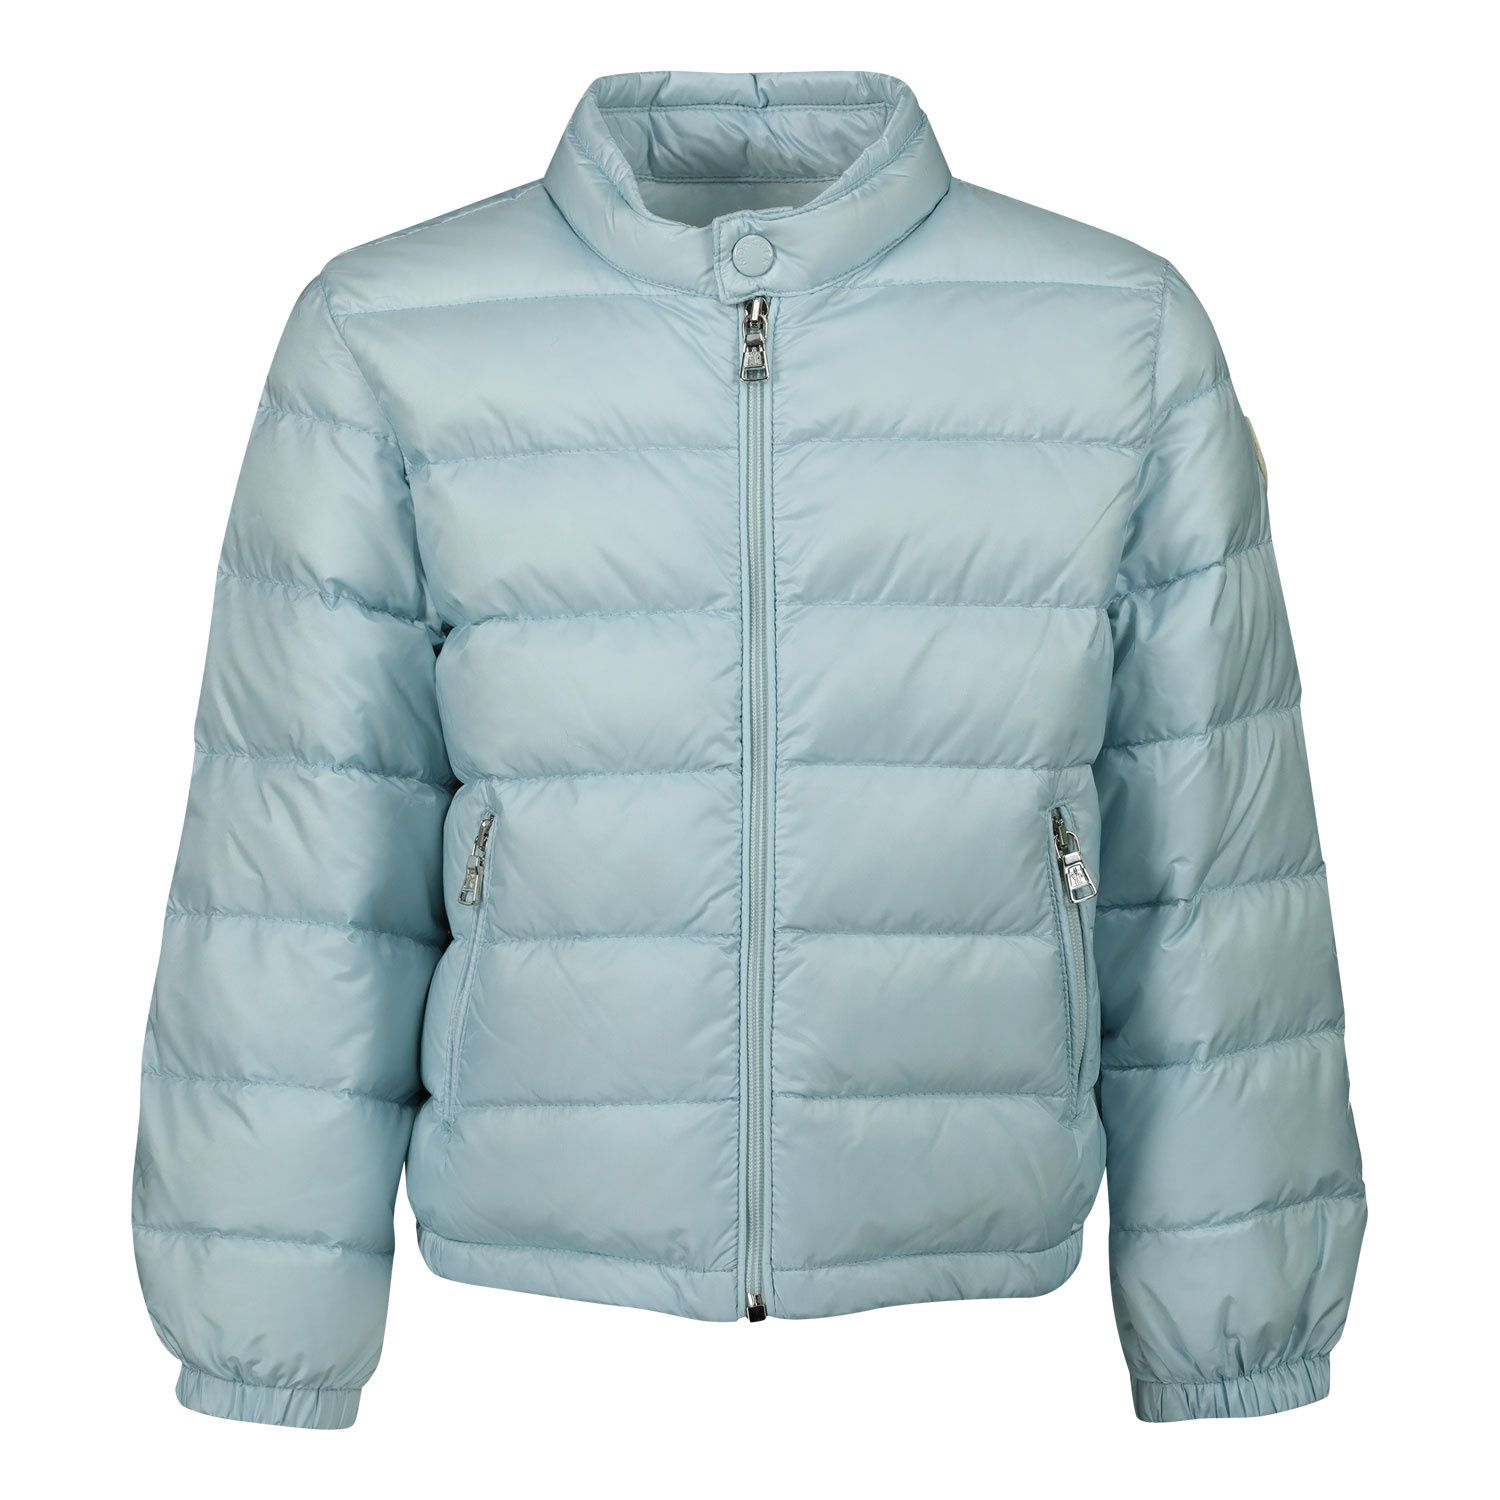 Picture of Moncler 1A10400 baby coat light blue